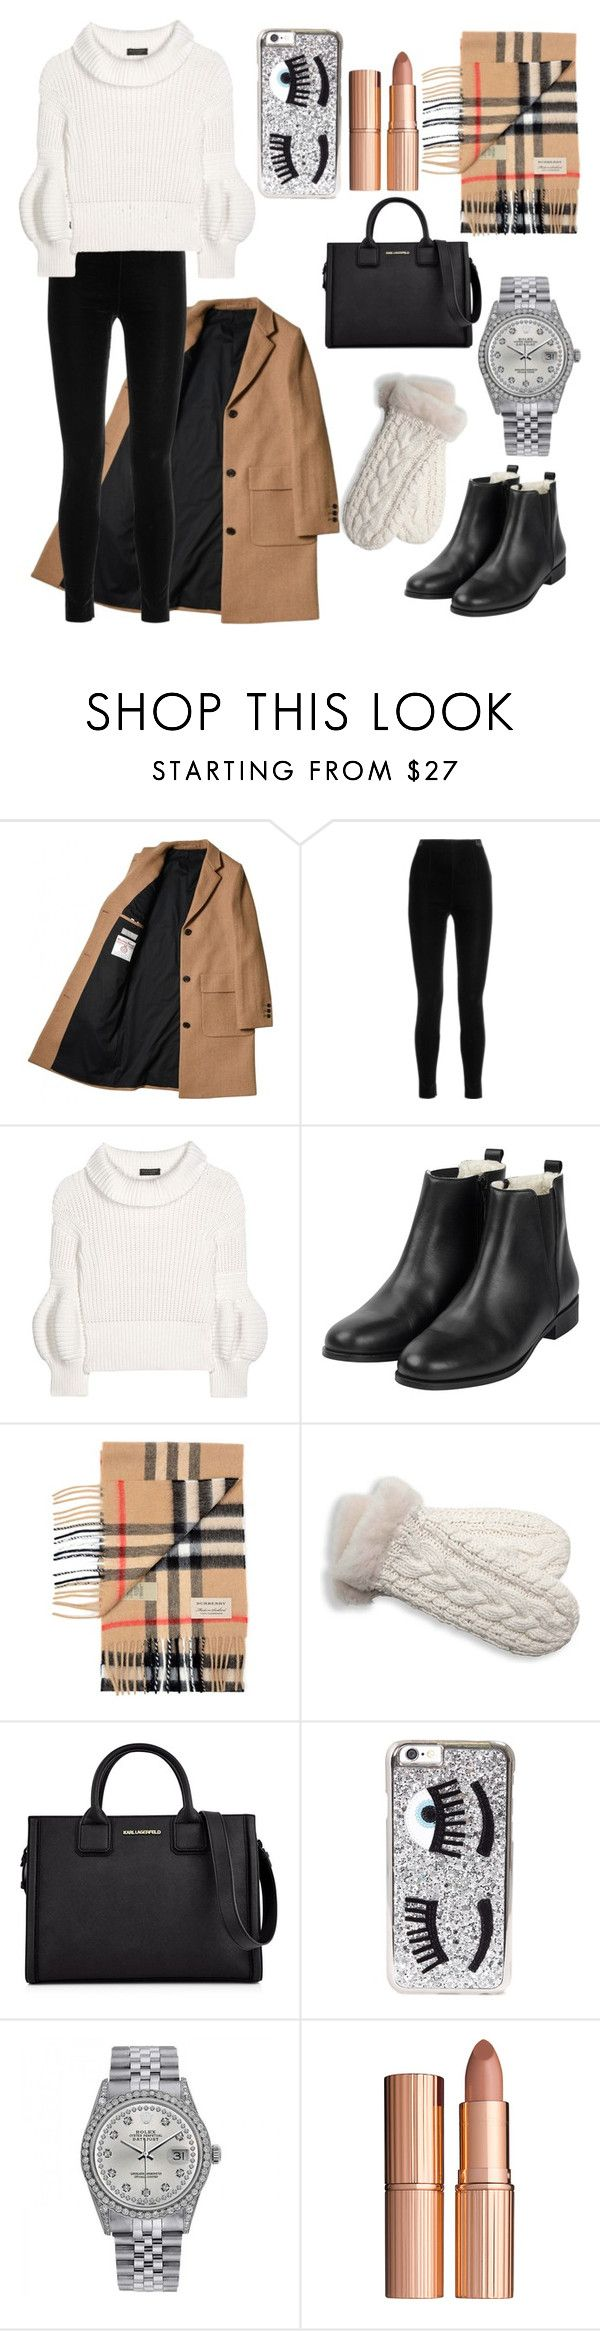 """""""Let's grab coffee!"""" by maddie-dobson ❤ liked on Polyvore featuring Balmain, Burberry, UGG Australia, Karl Lagerfeld, Chiara Ferragni, Rolex and Charlotte Tilbury"""